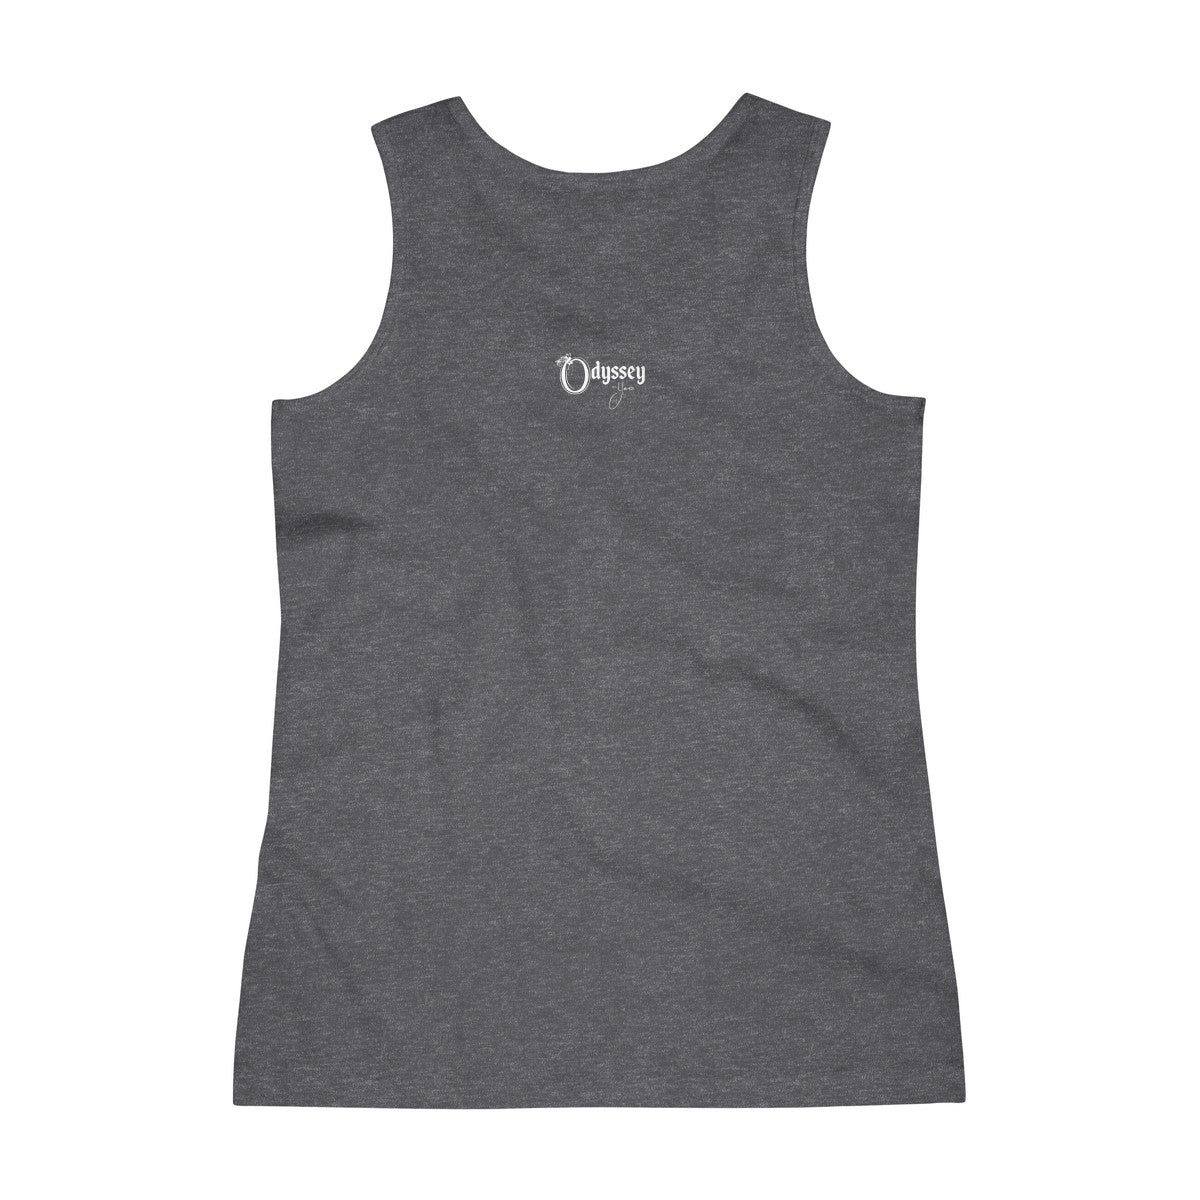 Odyssey Love Girls Tank Top -  Dark